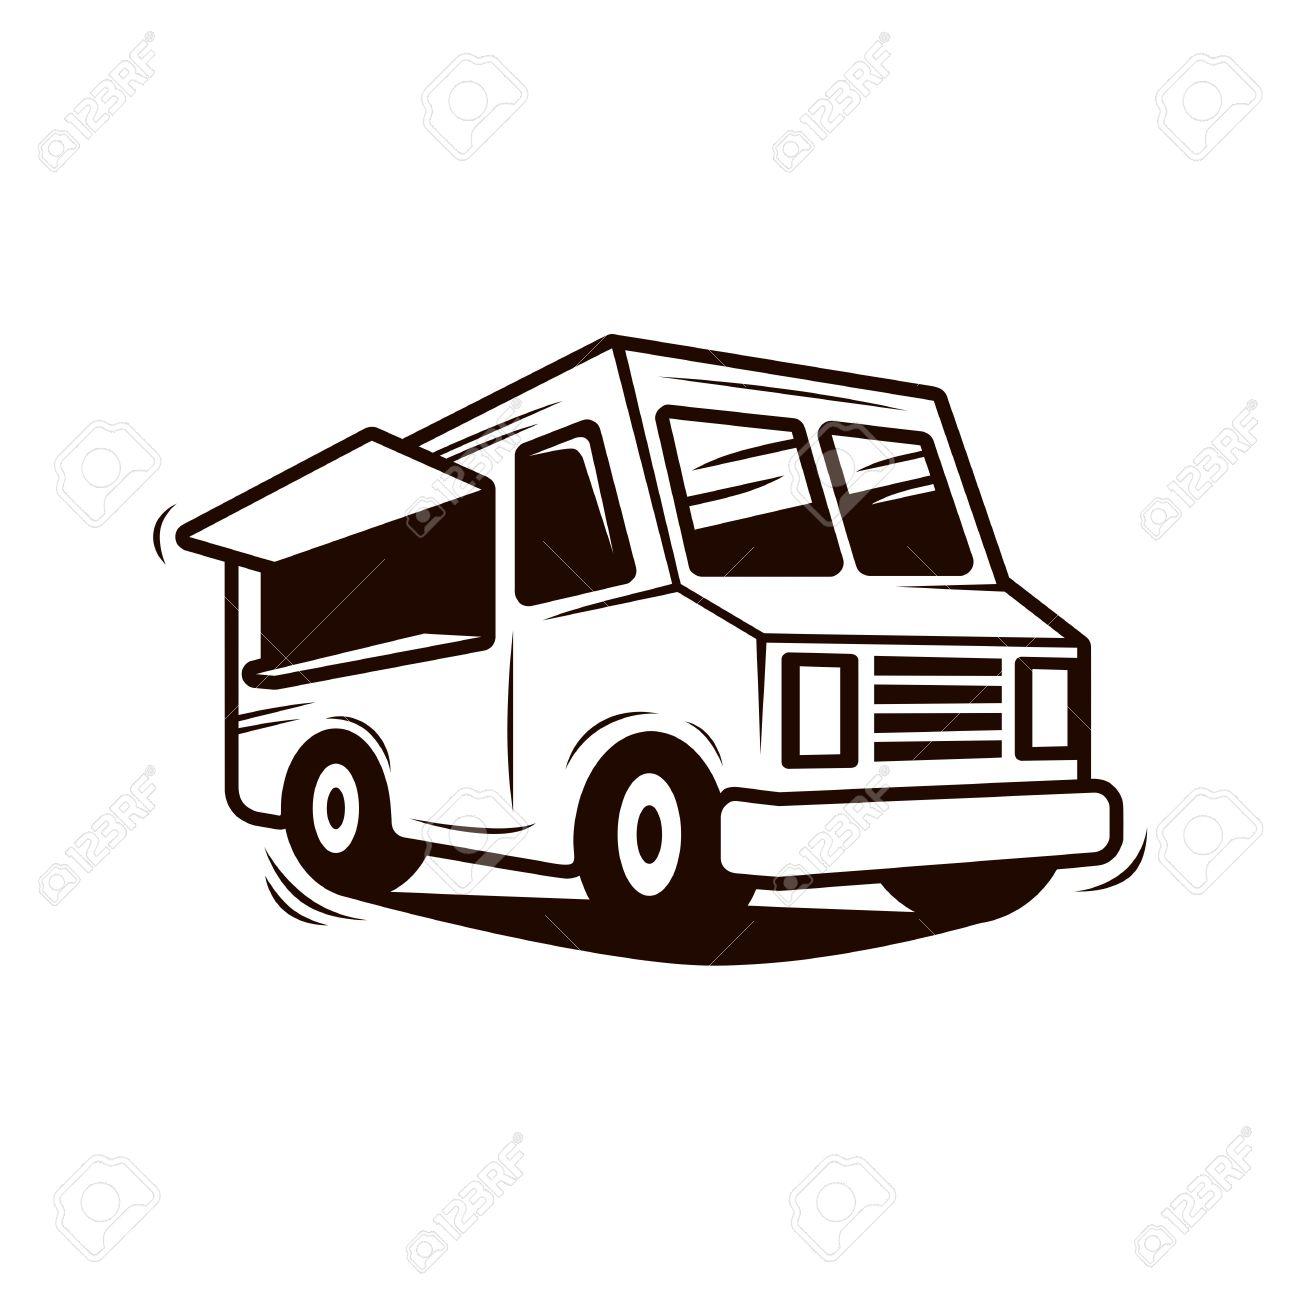 Food Truck Line Art Vector Stock